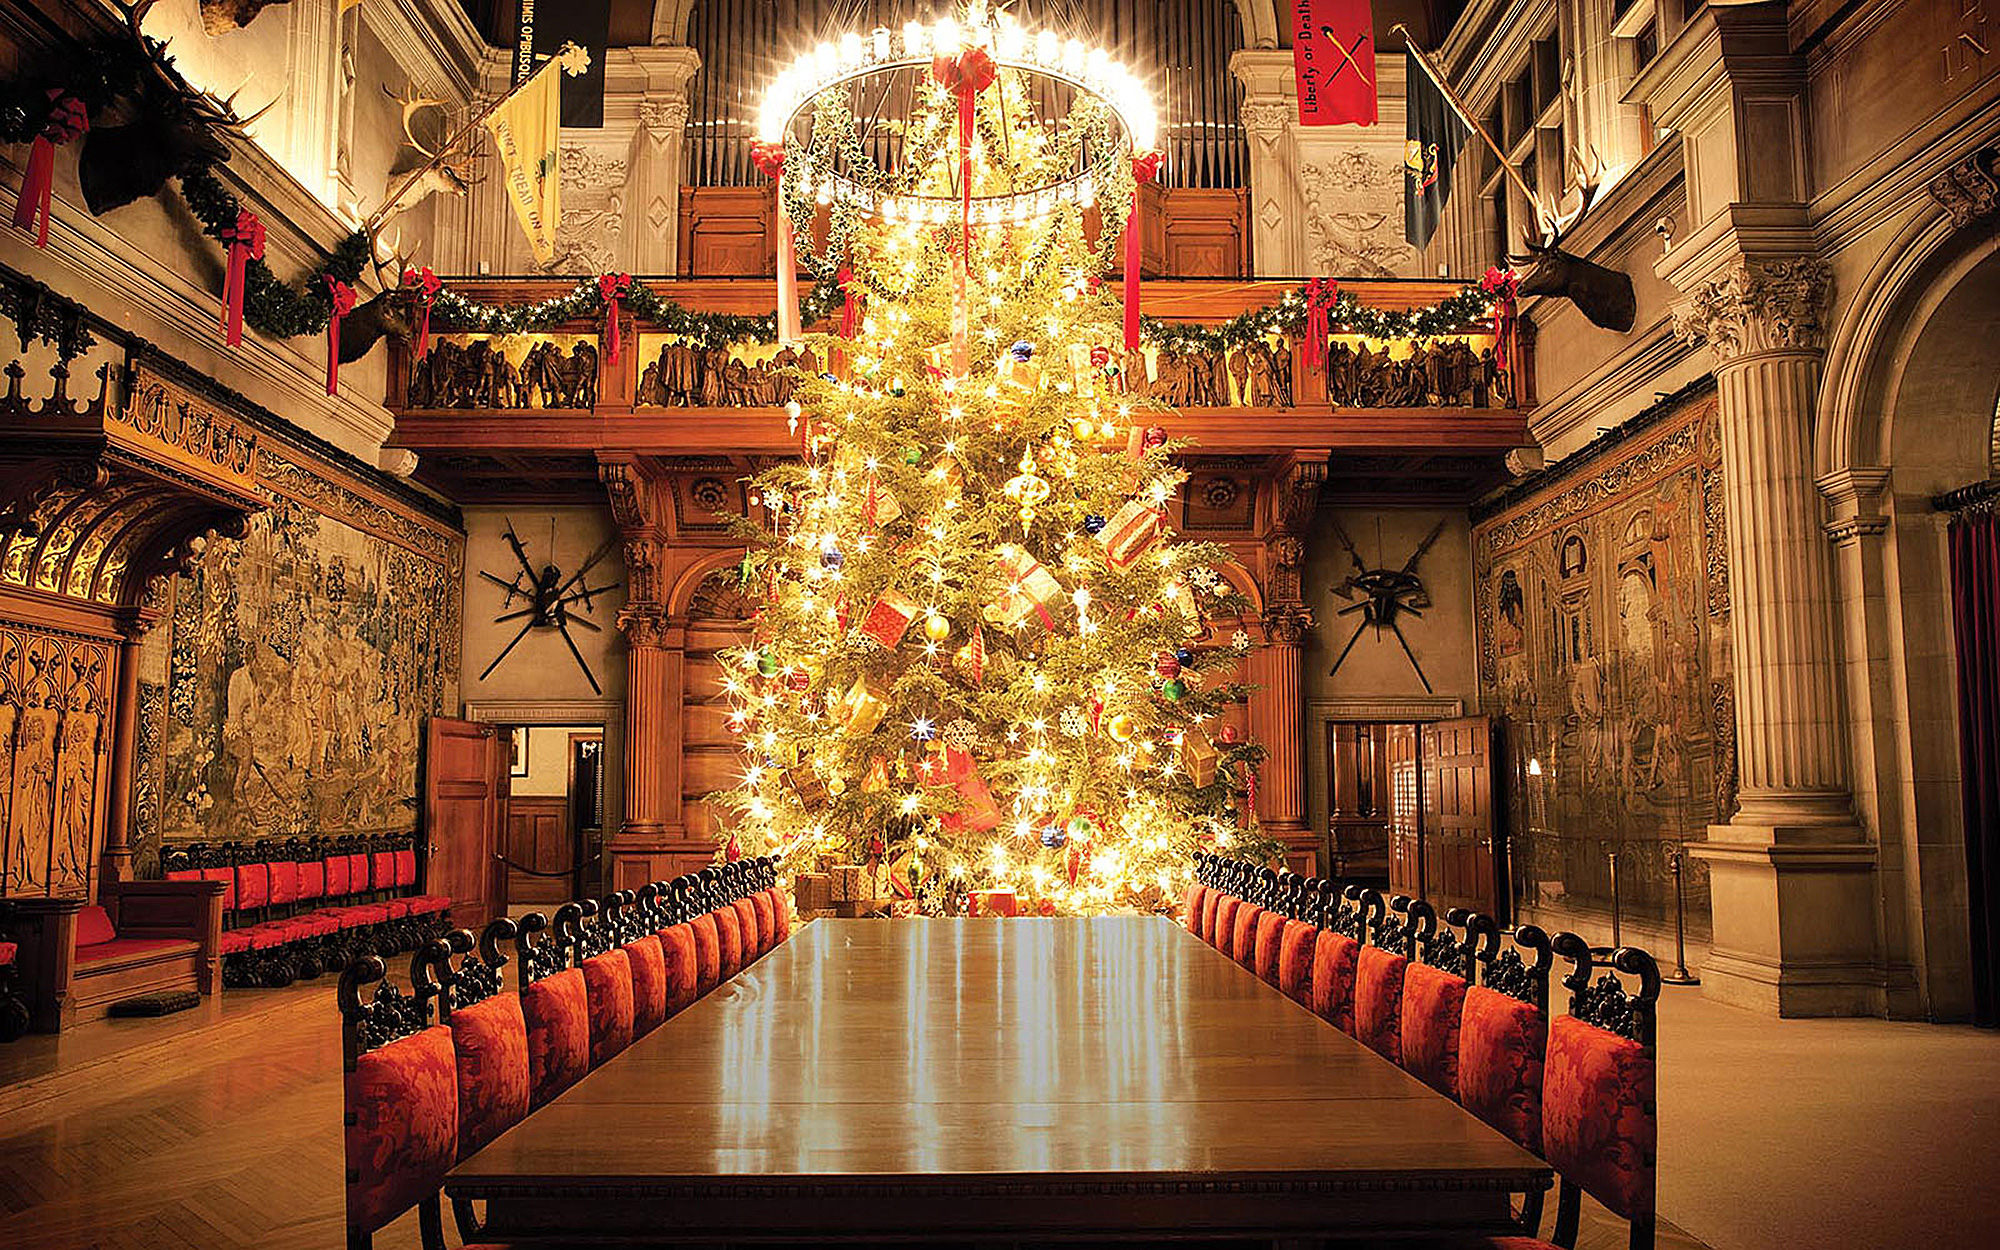 North Carolina's Biltmore Christmas Tree in Asheville